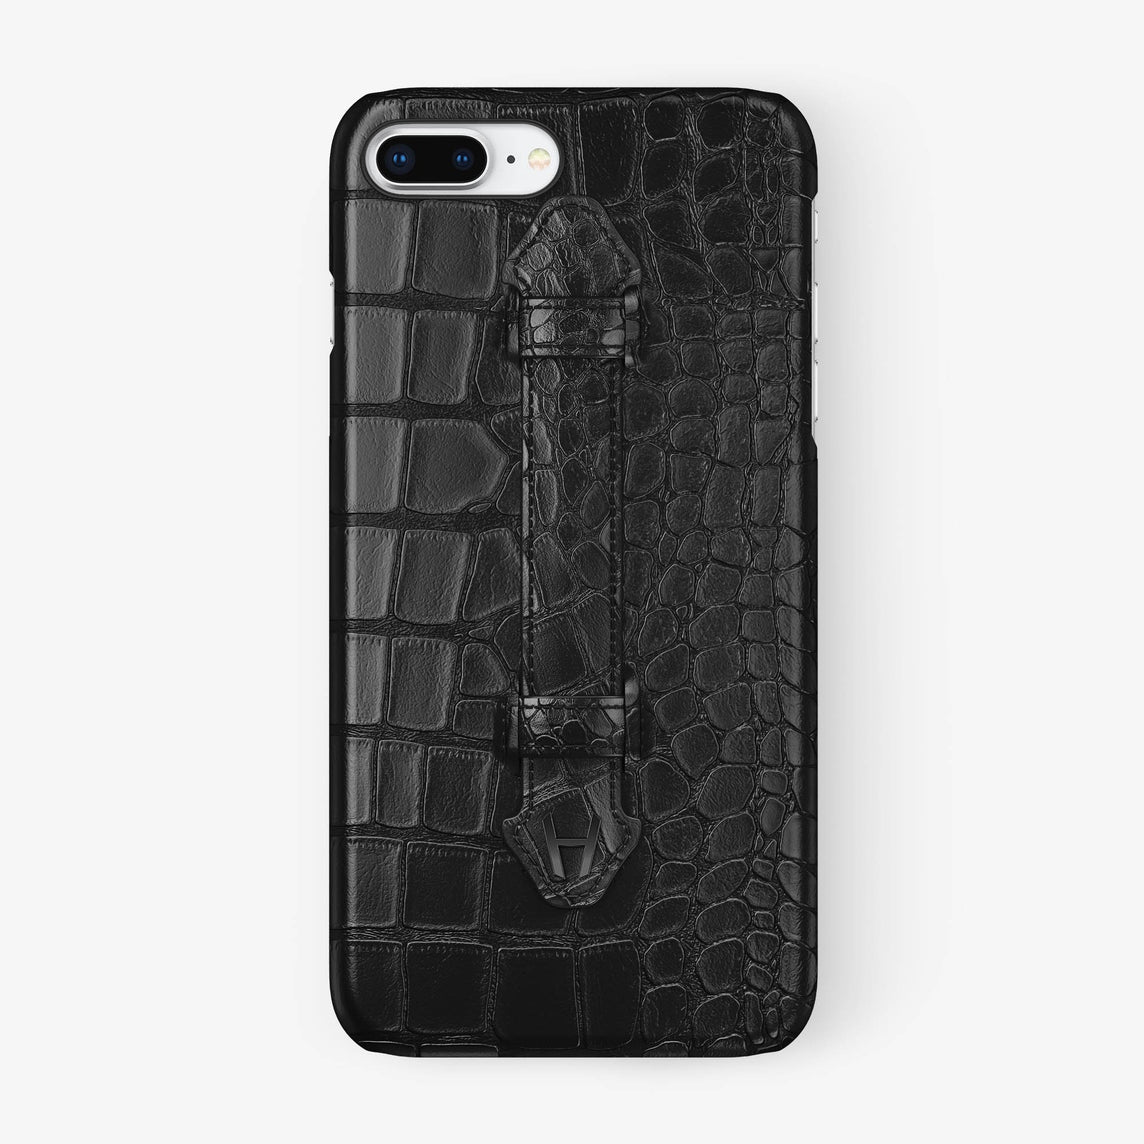 Black Alligator iPhone Finger Case for iPhone 7/8 Plus finishing black - Hadoro Luxury Cases